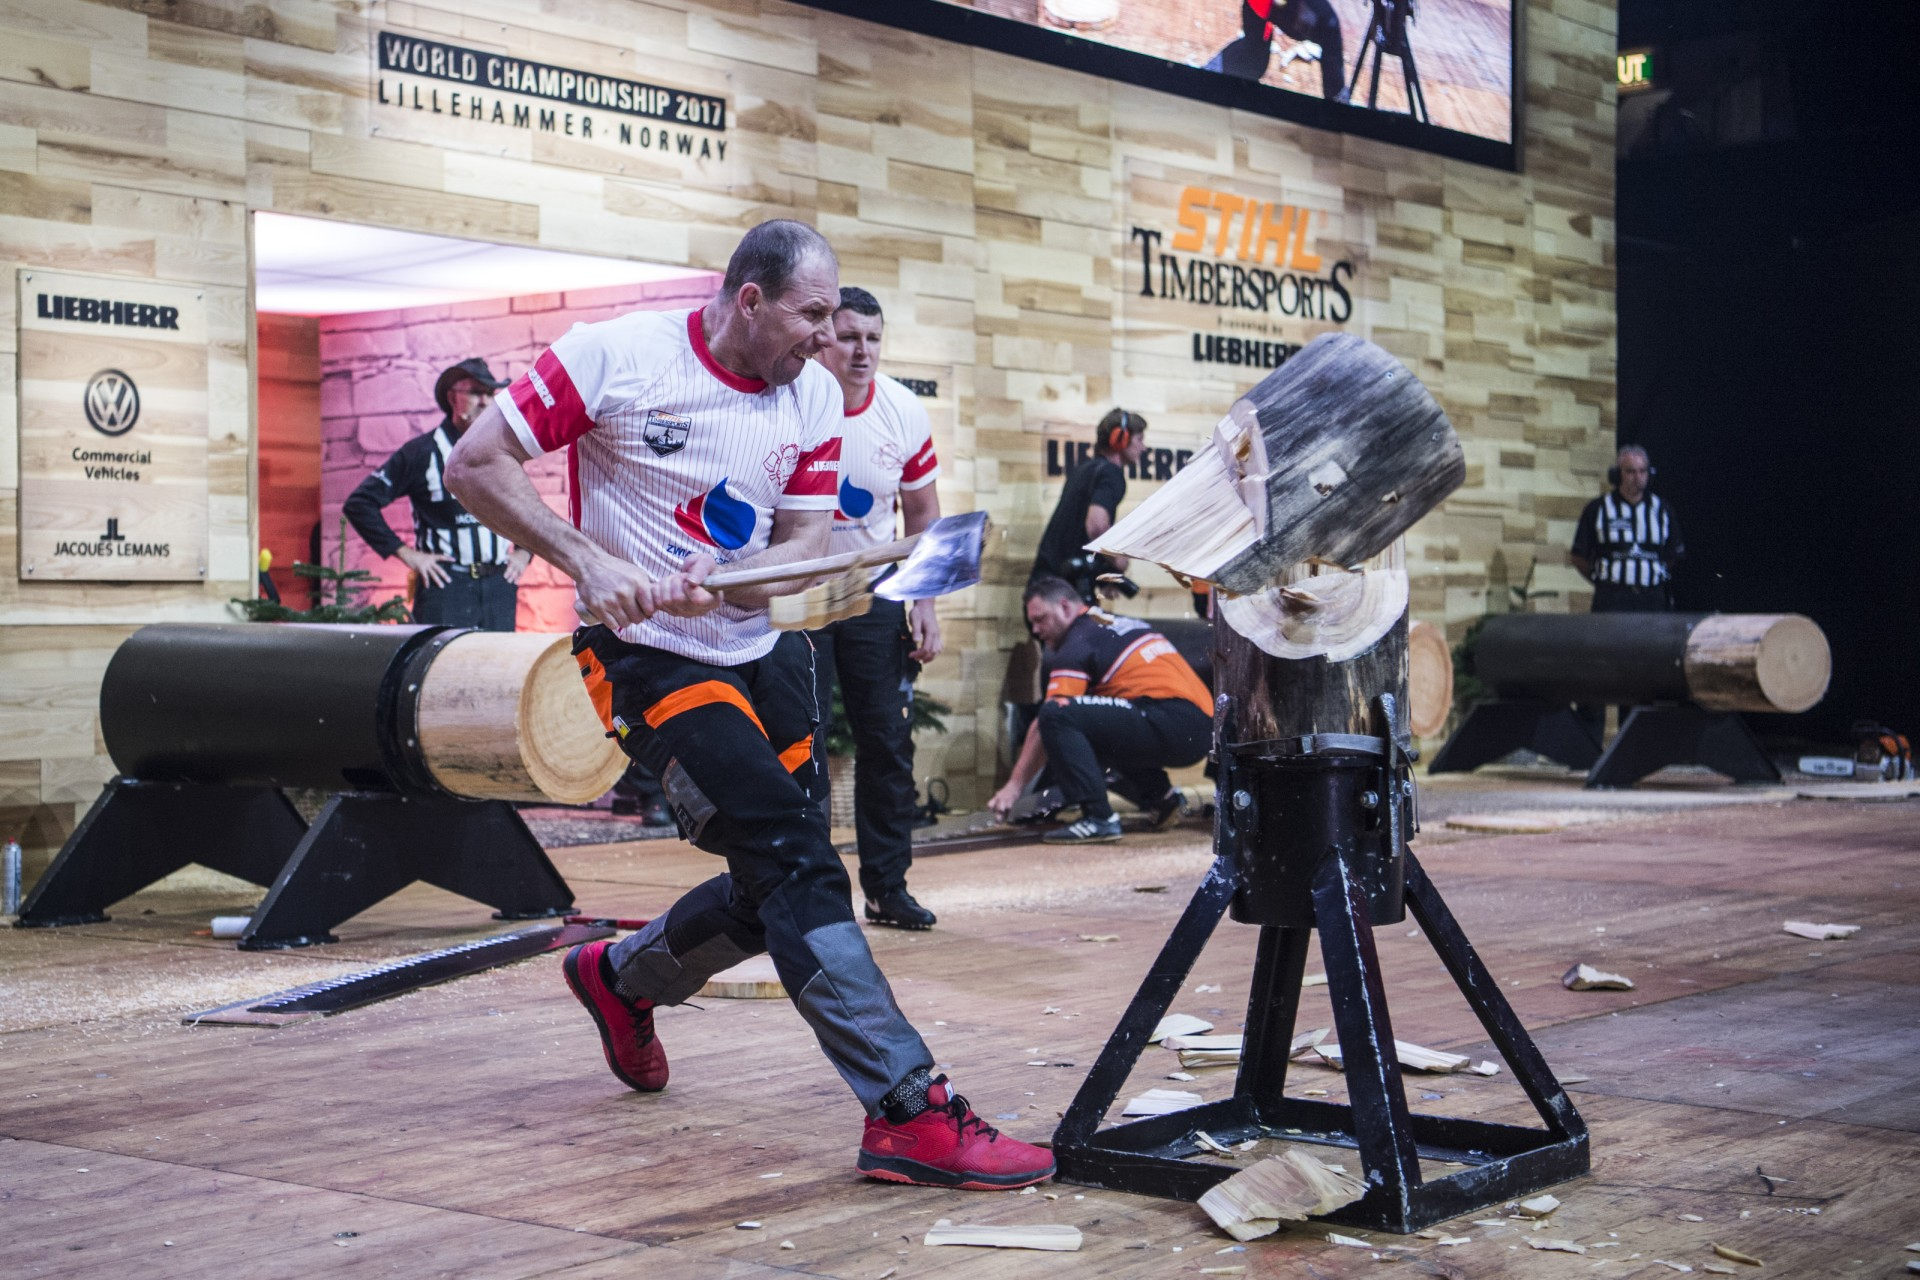 Team Poland competes against Team Netherlands during the Team Competition of the Stihl Timbersports World Championships at the Hakons Hall in Lillehammer, Norway on November 3, 2017.